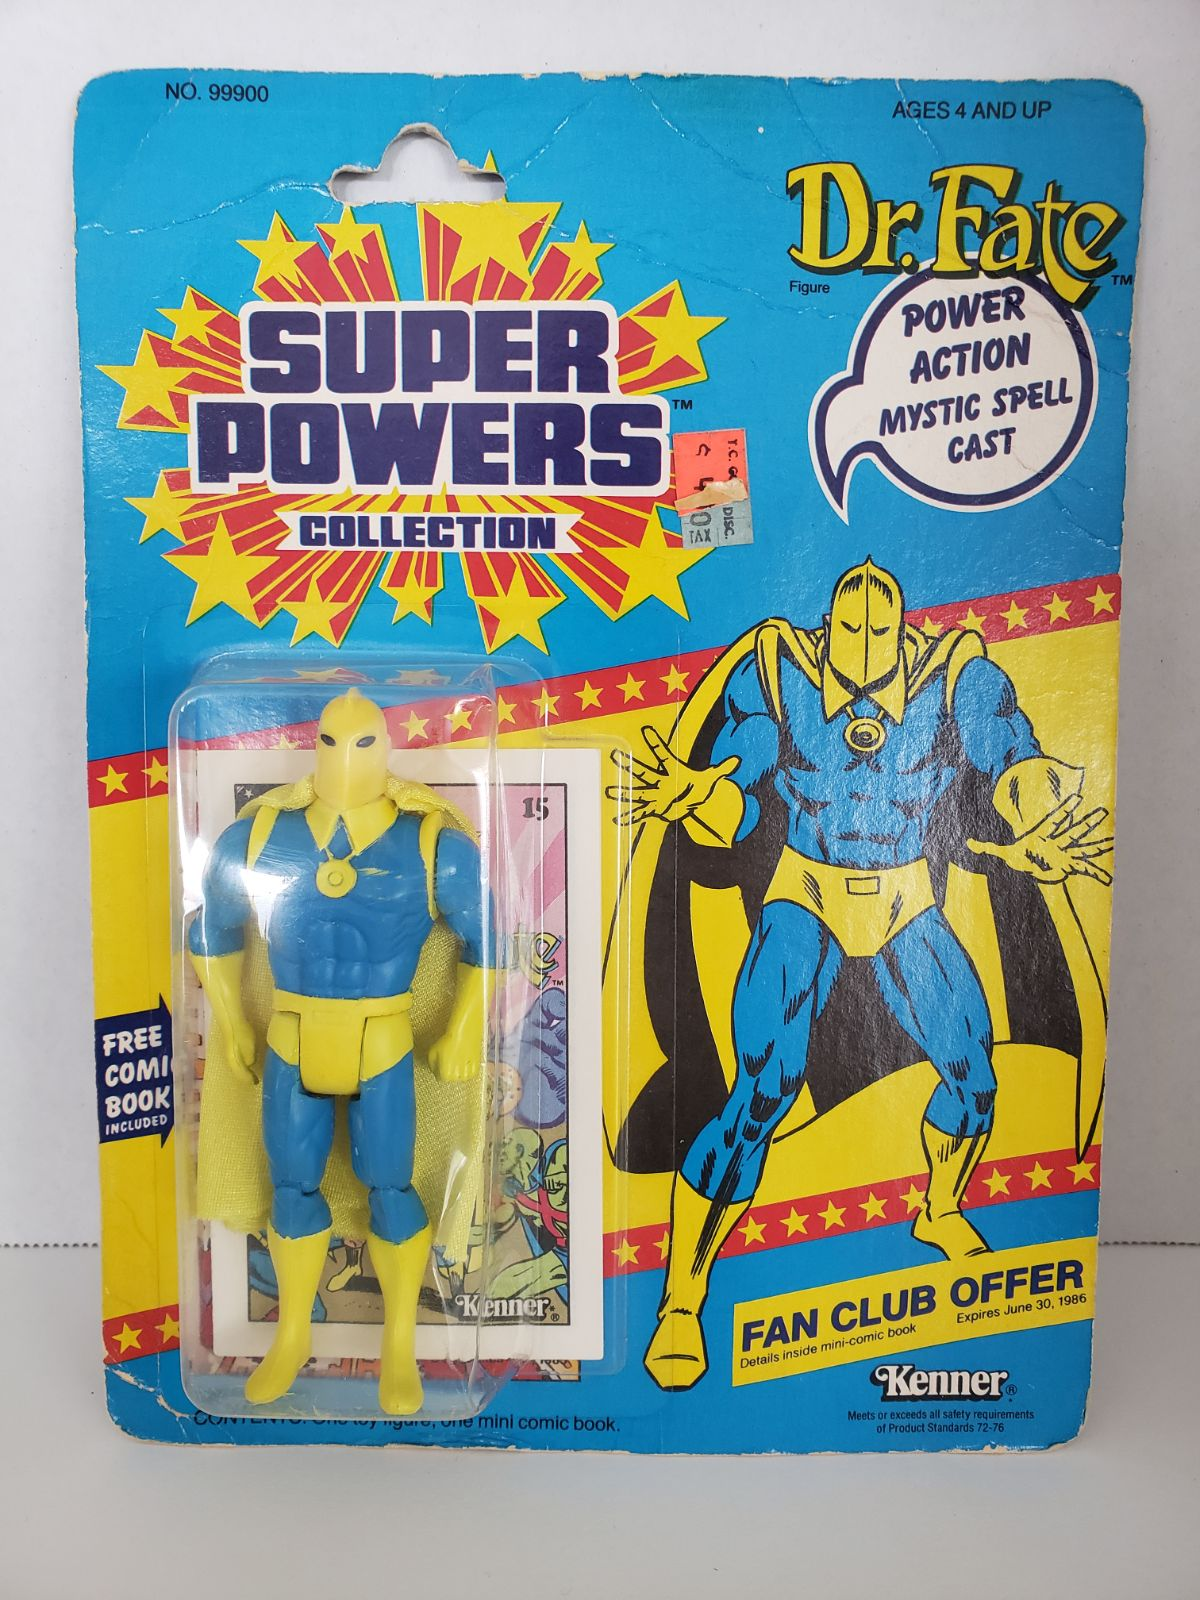 Super Powers Dr. Fate